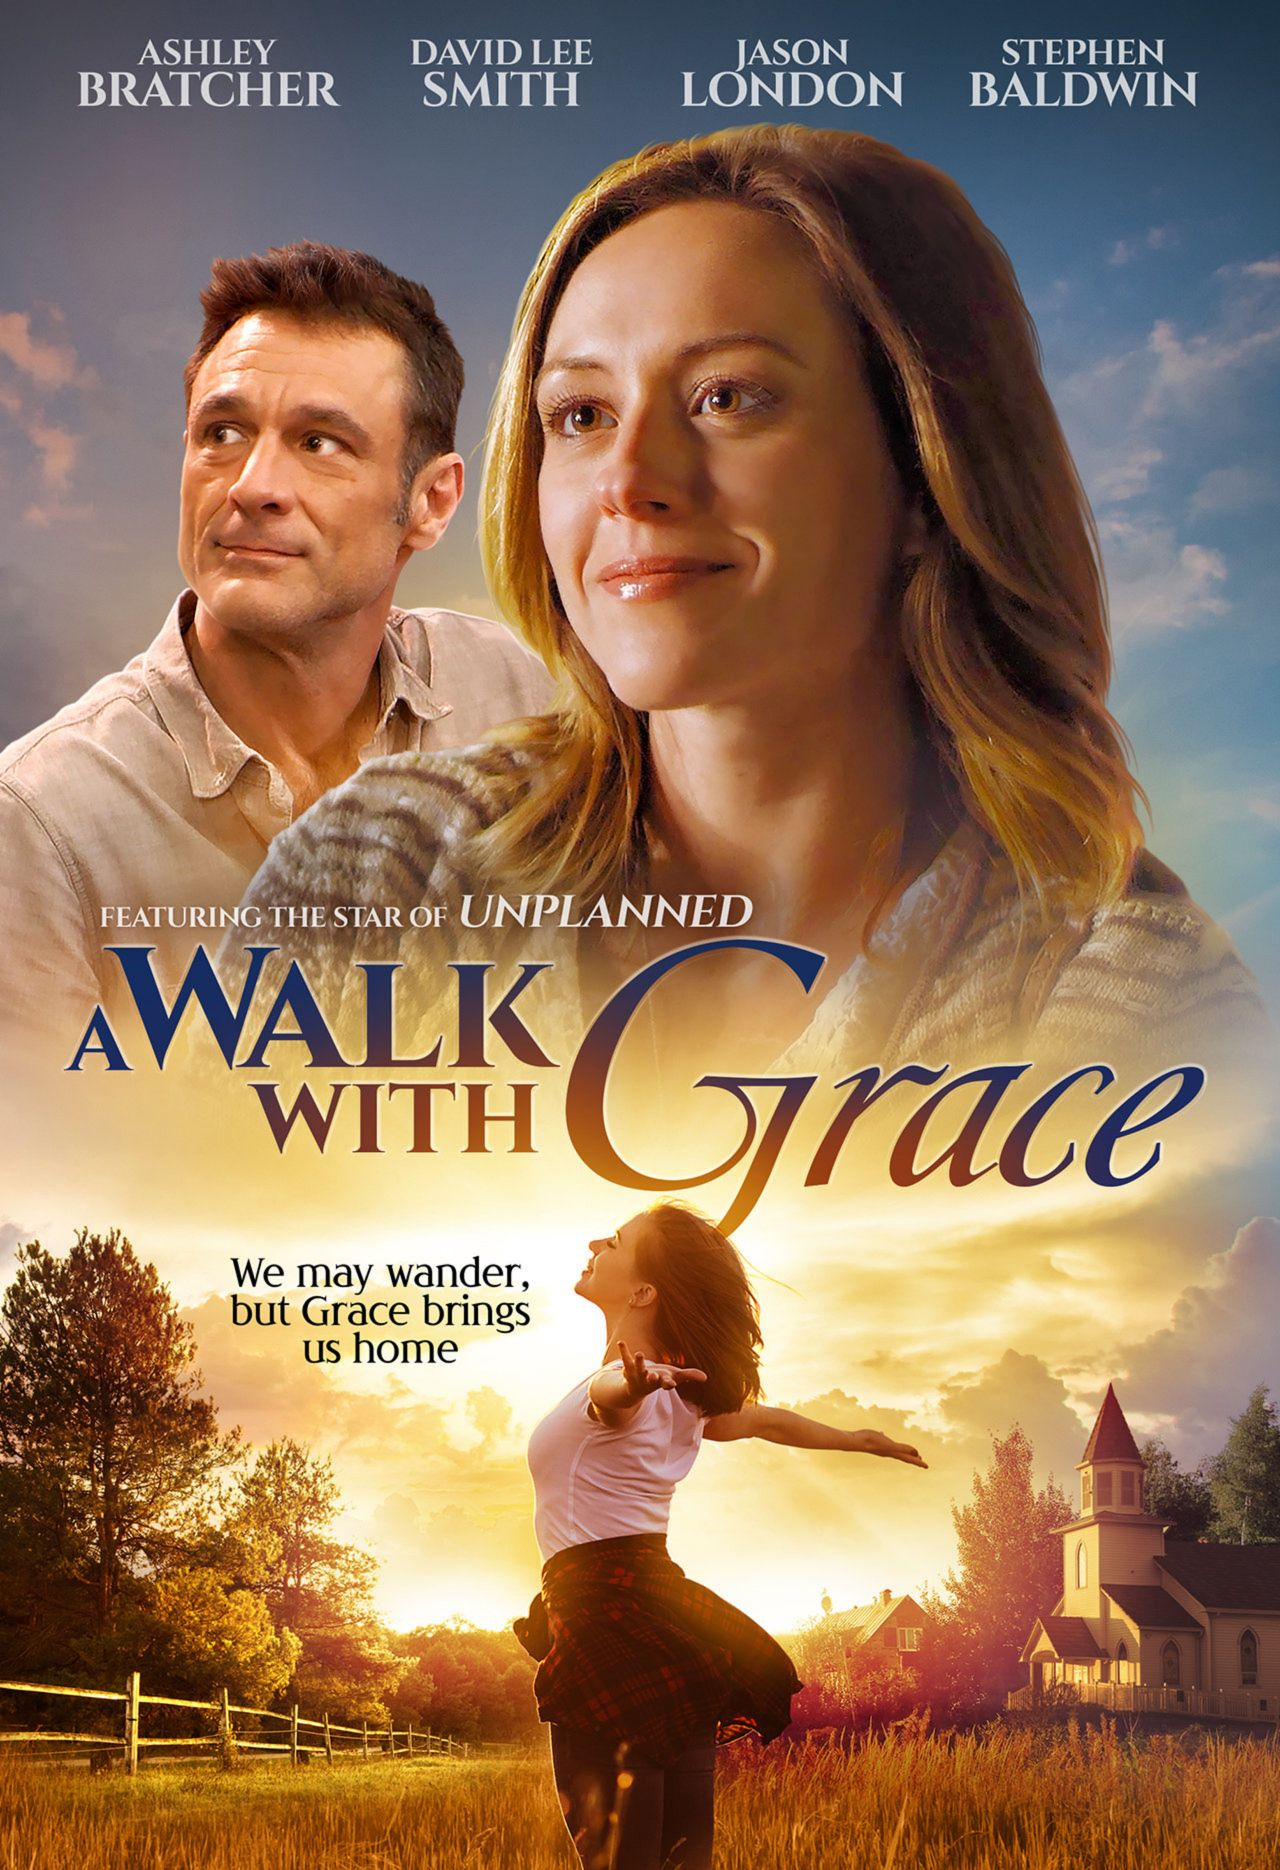 A Walk With Grace Spoiler Free Review A Beautiful Modern Retelling Of The Prodigal Son The Wic Project Blog In 2020 Good Christian Movies Christian Movies Christian Films